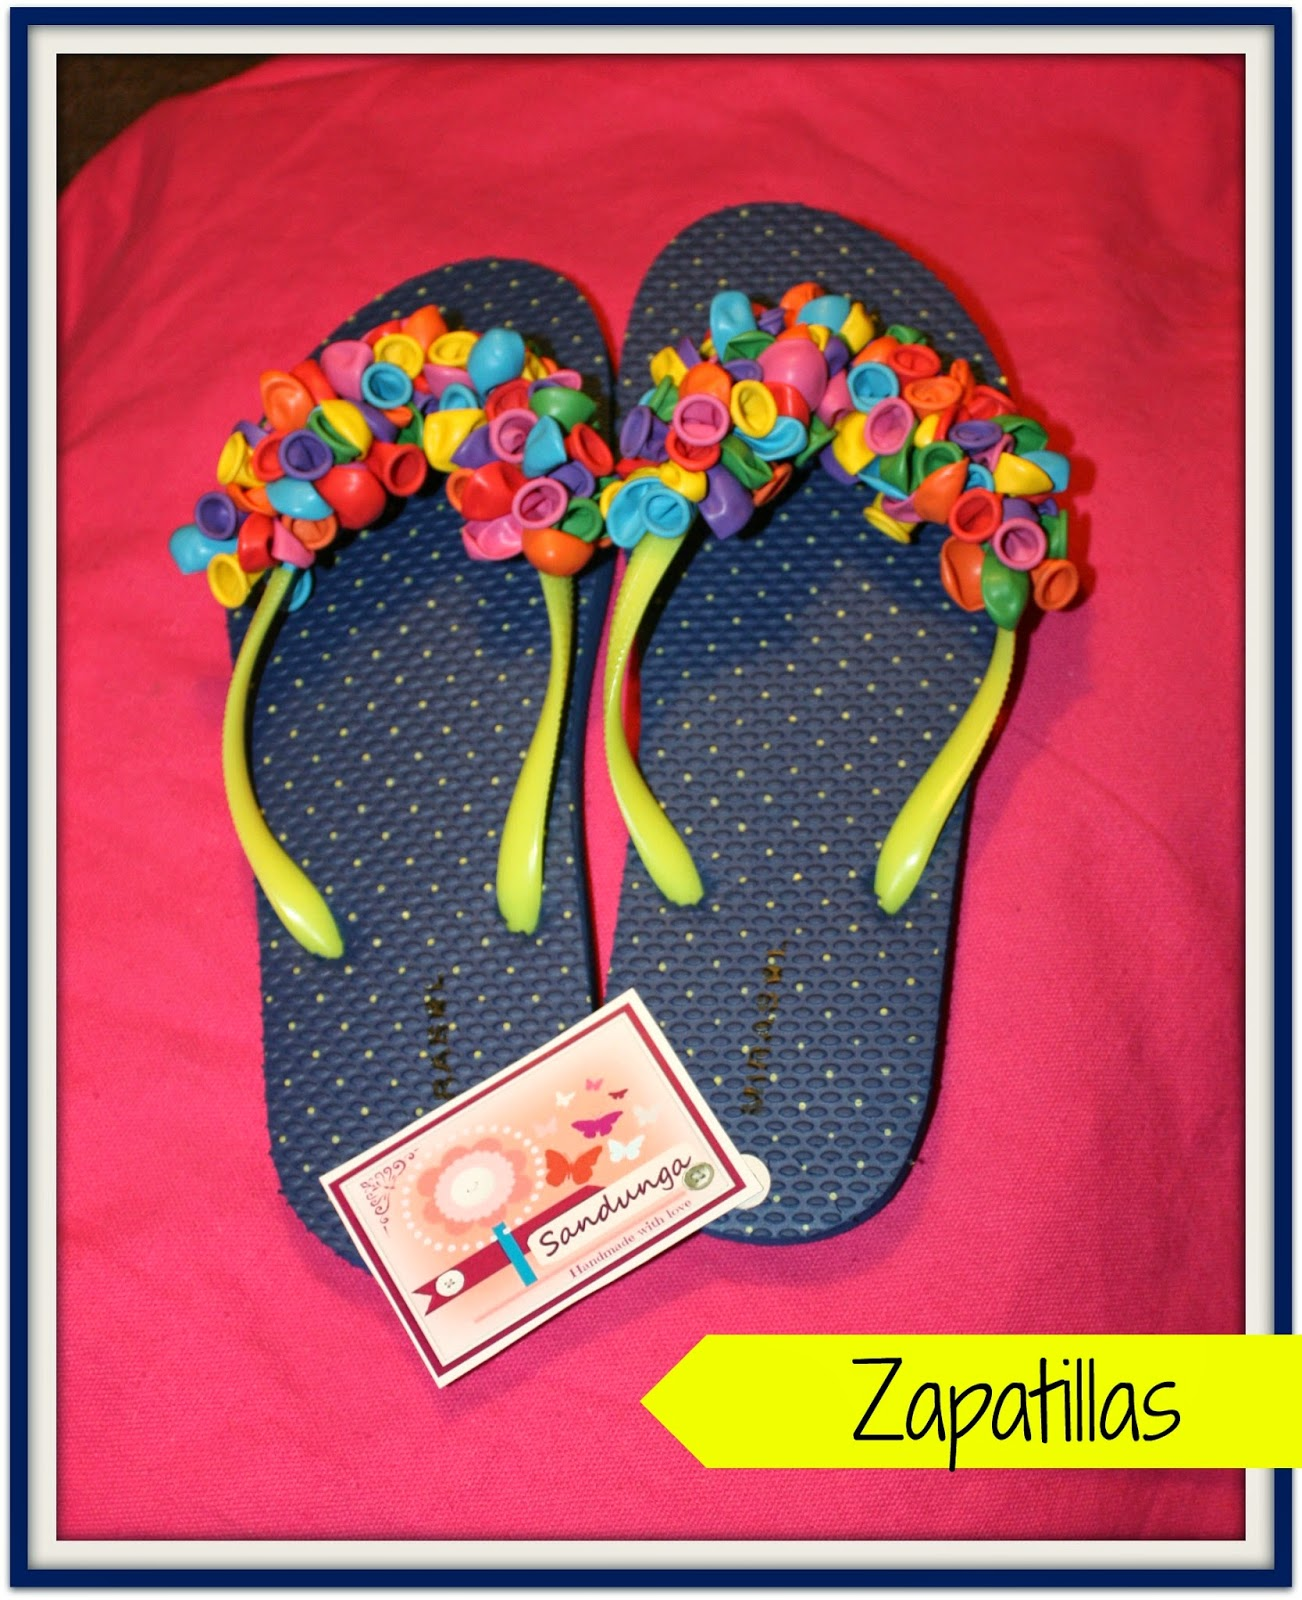 http://sandungacomplementos.blogspot.com.es/search/label/Zapatillas